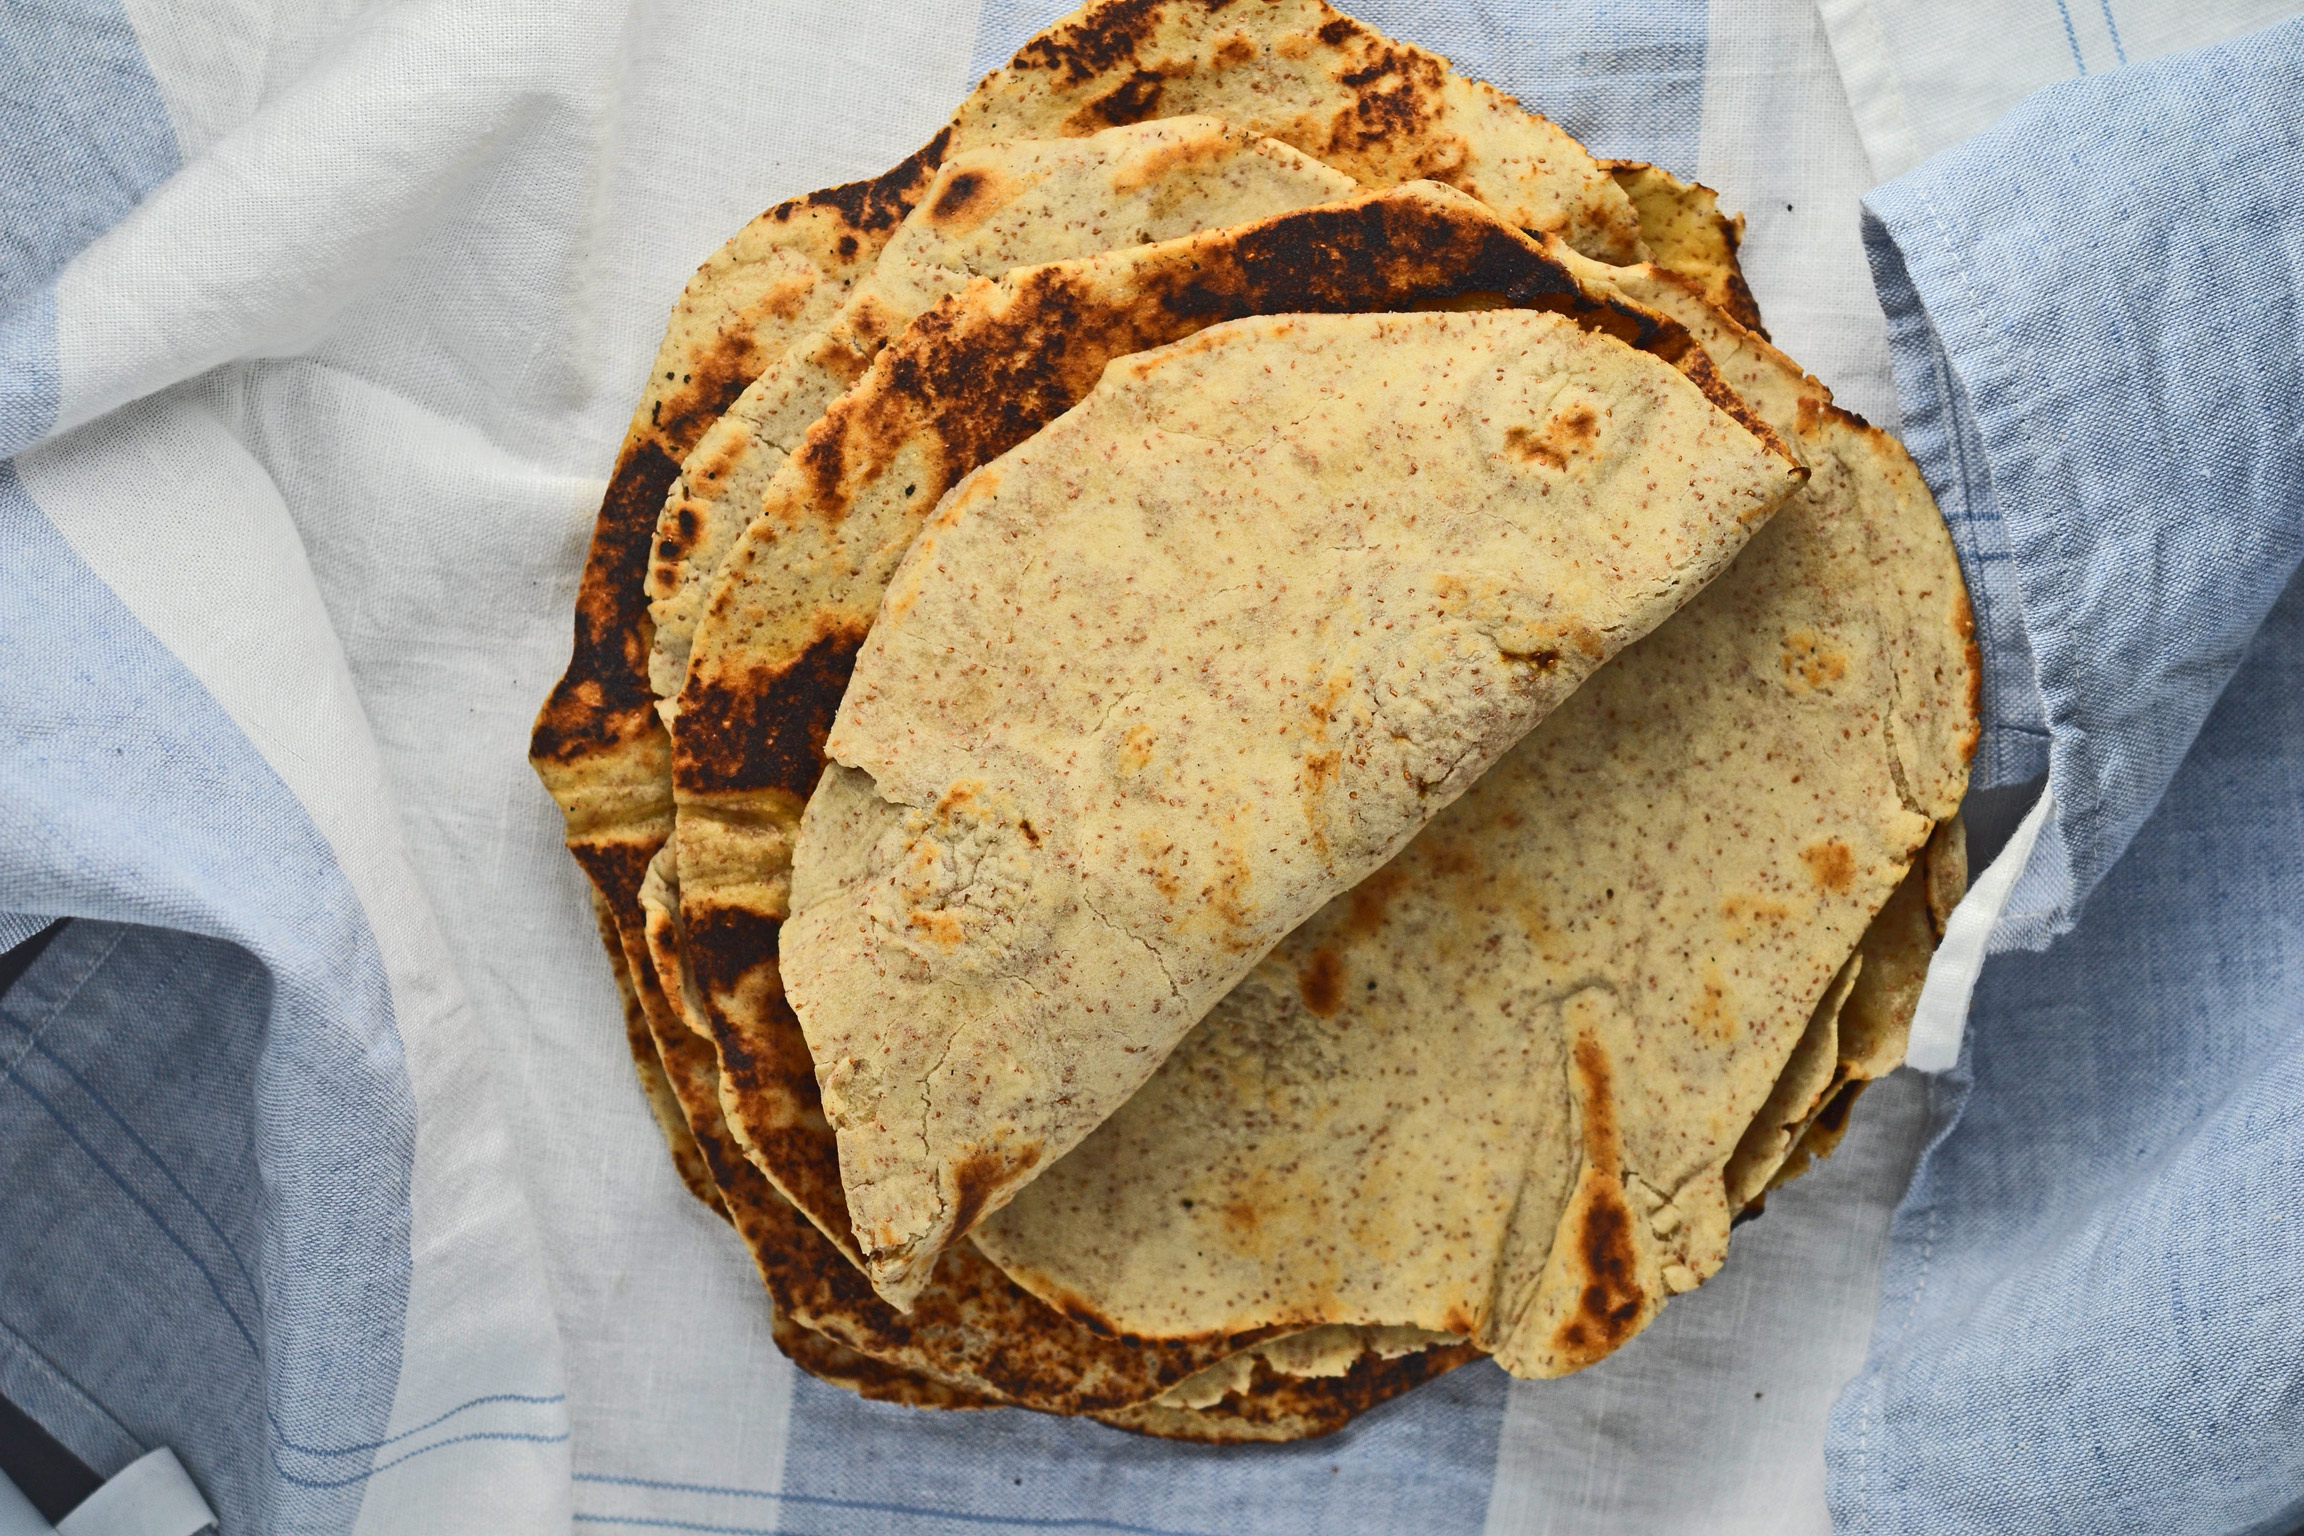 Gluten Free Flat Bread: Whole Grain Gluten Free Tortillas